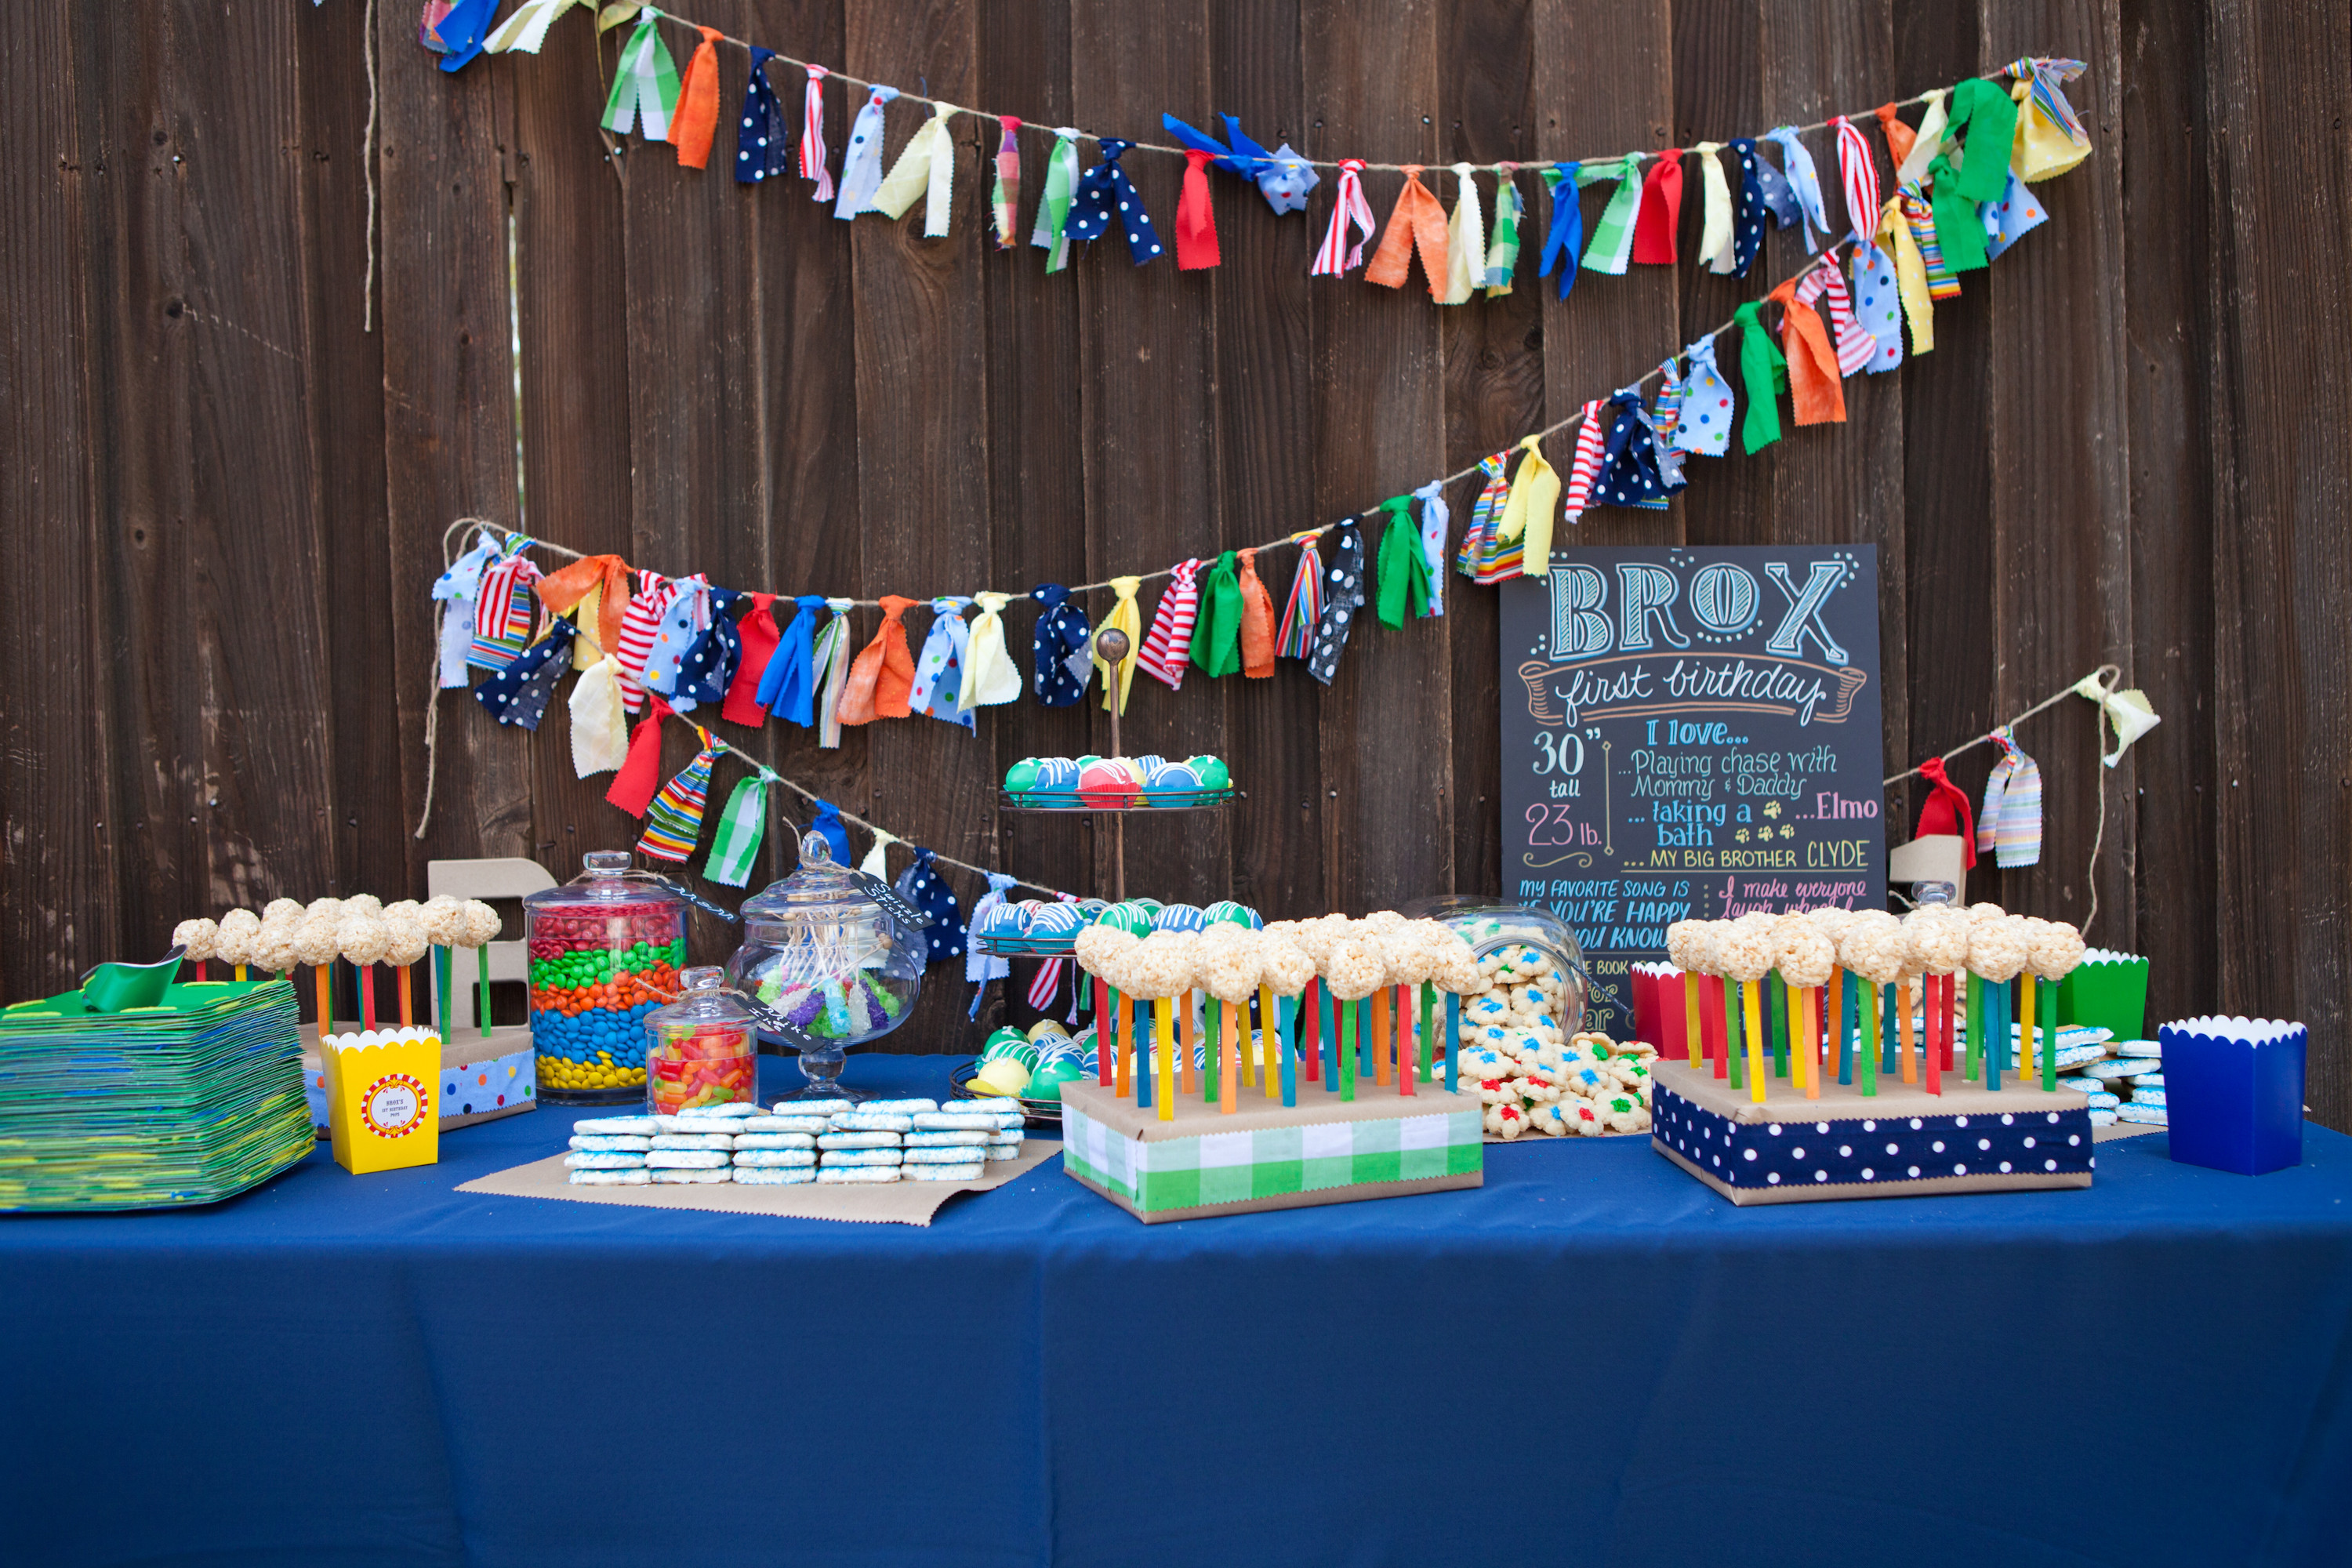 Best ideas about Birthday Party Project . Save or Pin Brox s Primary Color First Birthday Party Project Nursery Now.